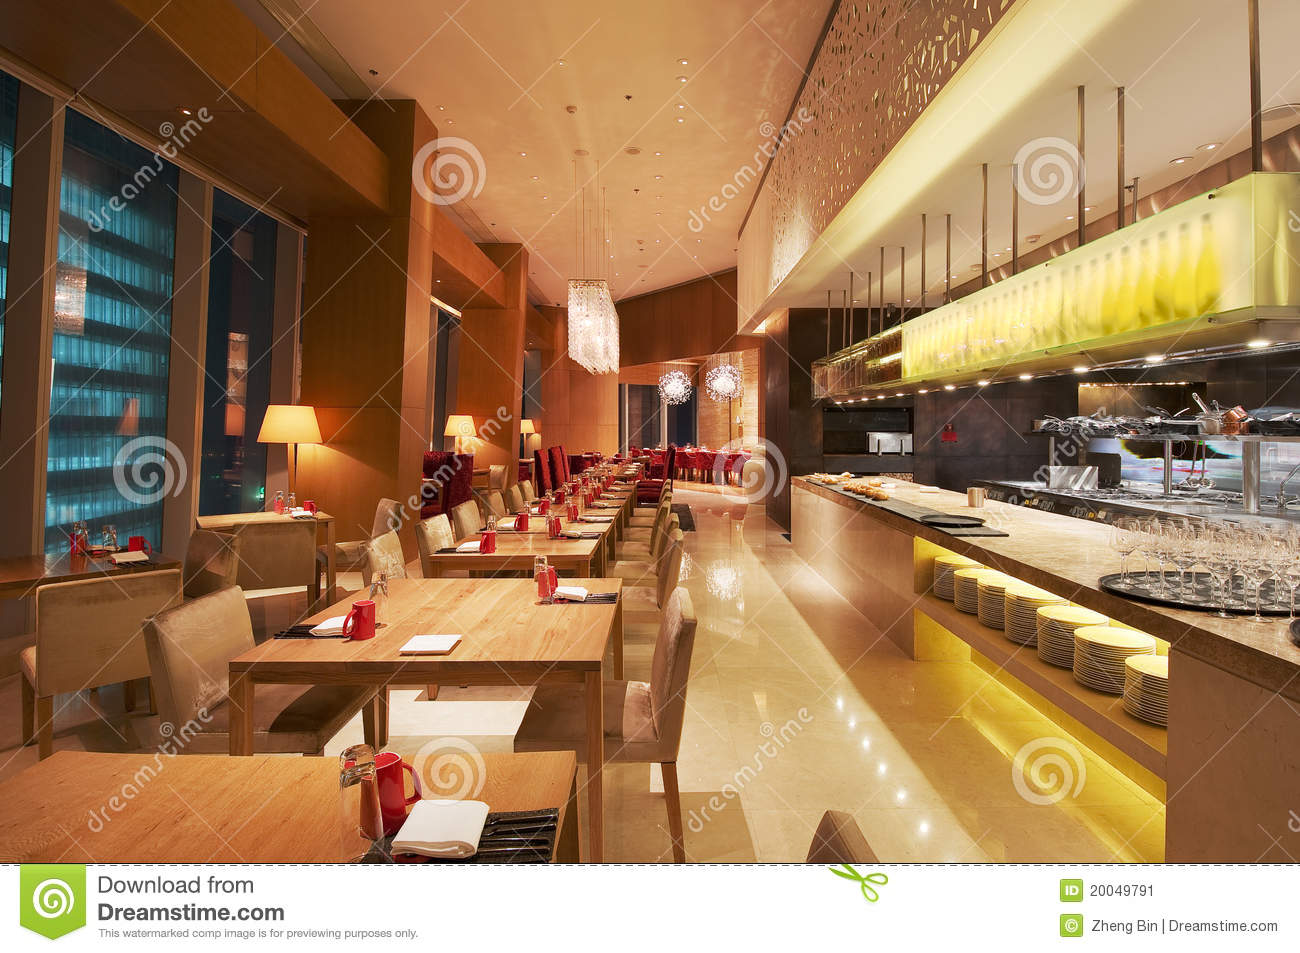 Download Restaurant stock image. Image of detail, architecture - 20049791